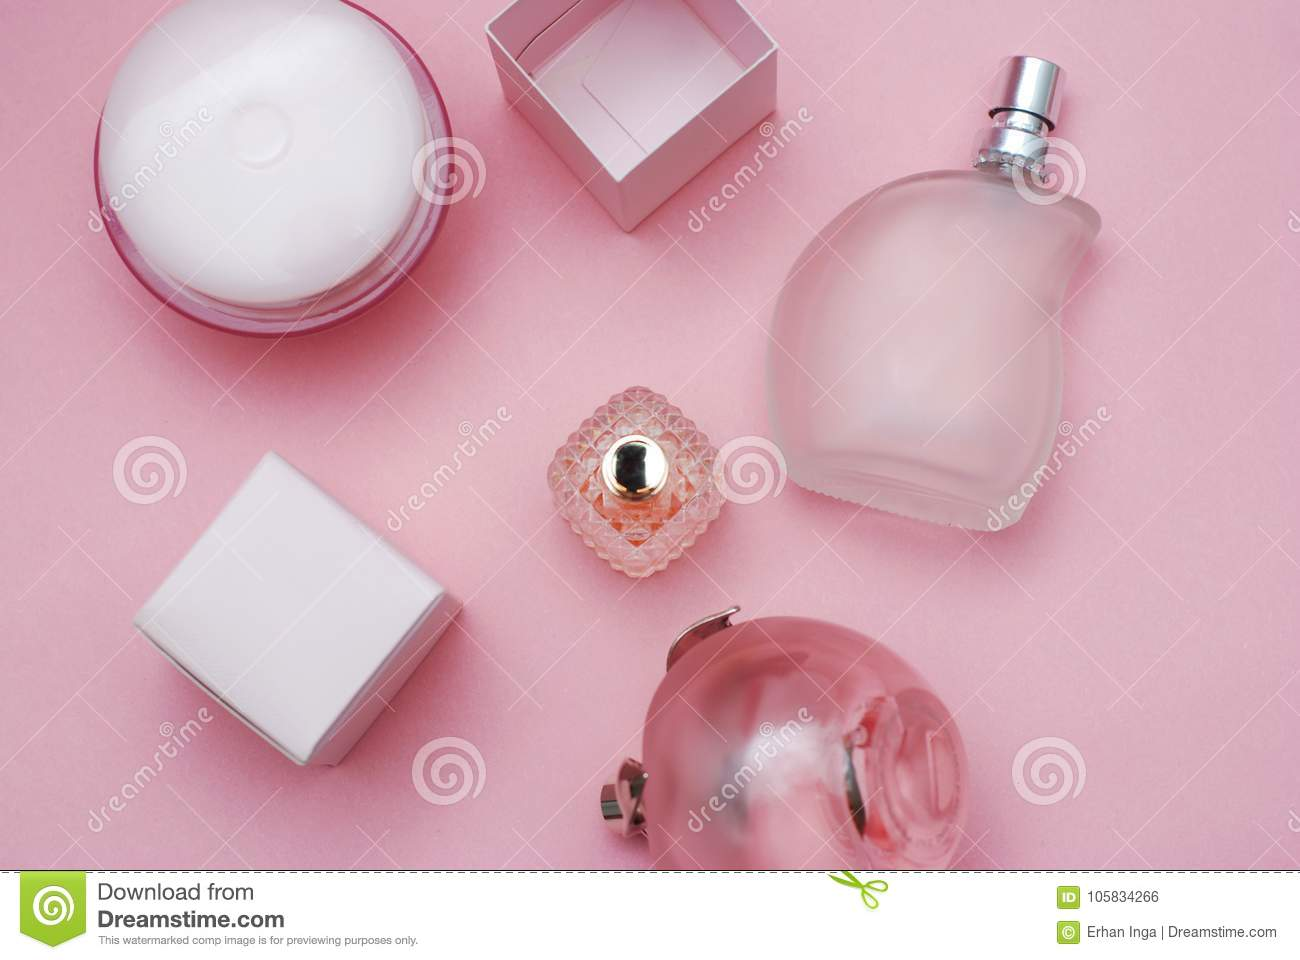 Women`s Perfumes Botles and Cosmetics in Beautiful Glass Bottle and on pink background. Fashion and Beauty Concept.